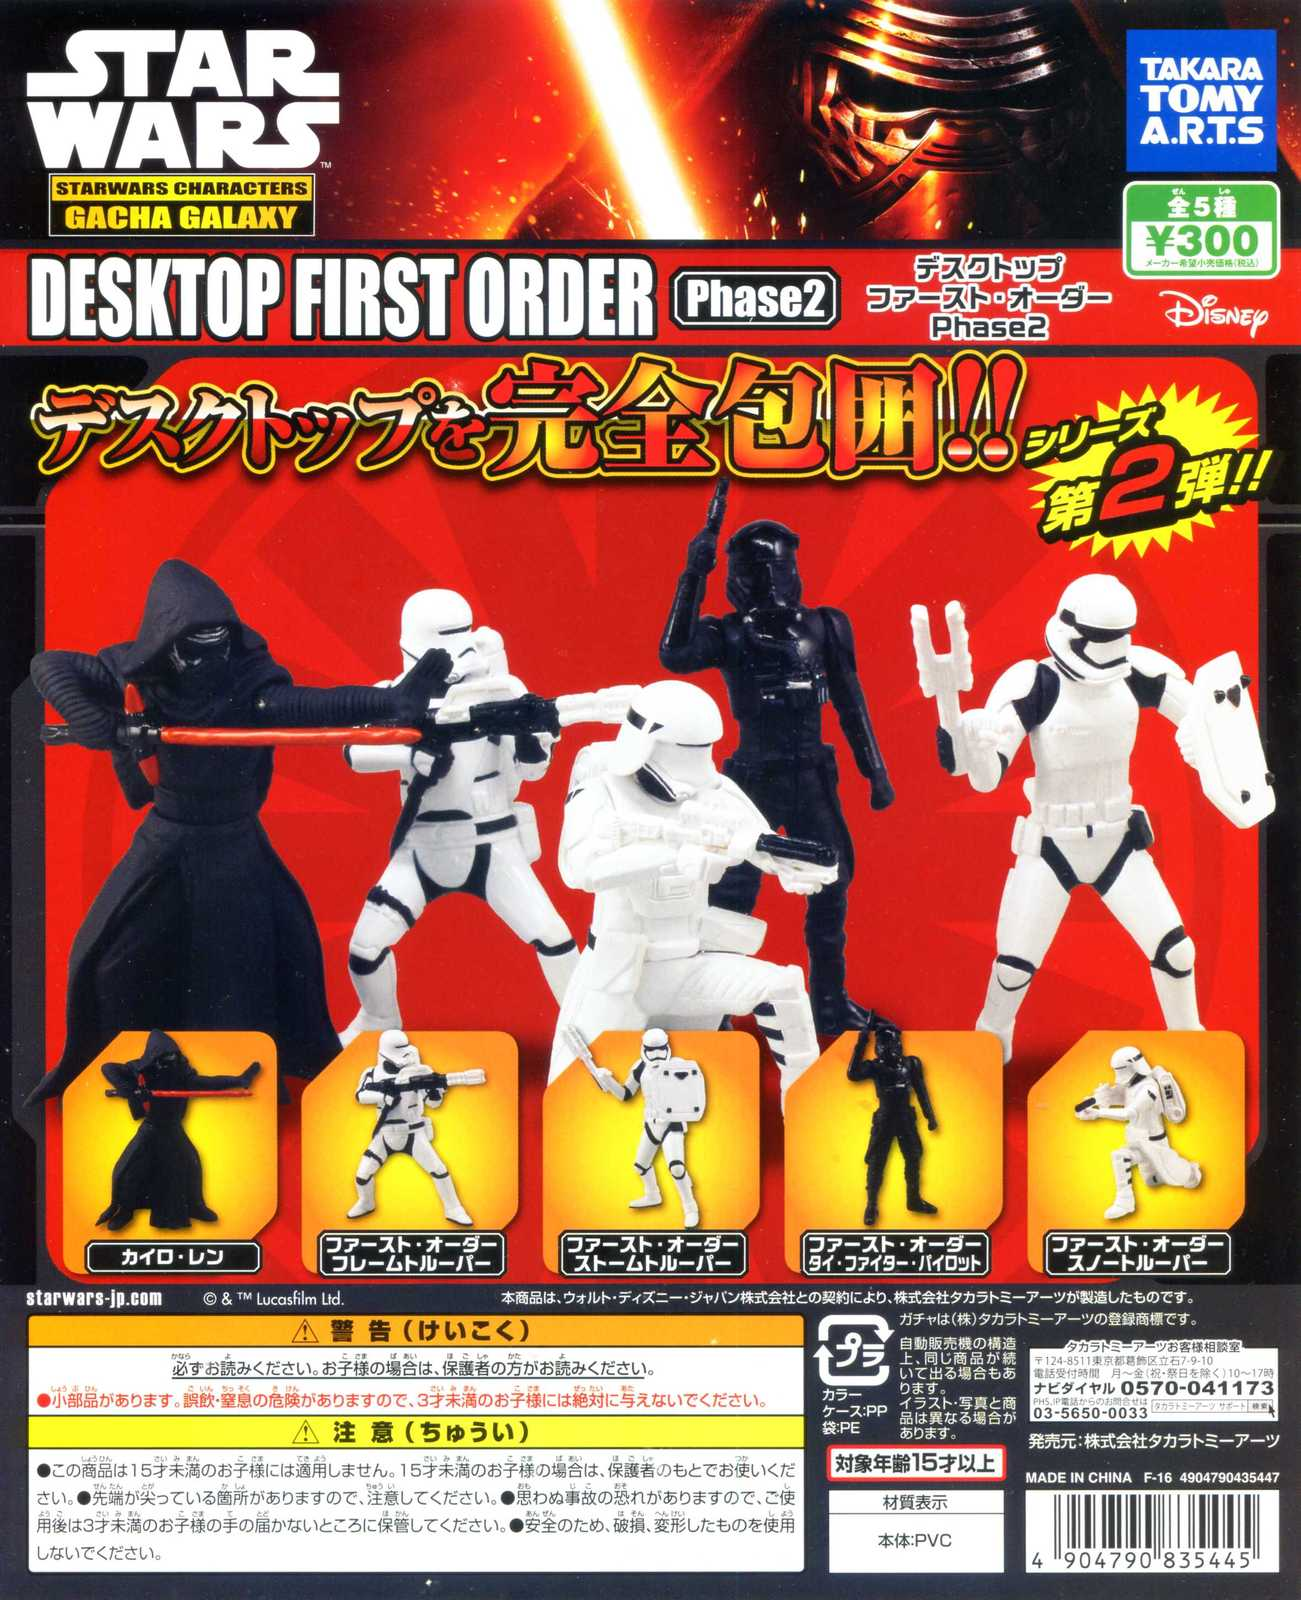 ARTS STAR WARS Characters GACHA GALAXY DESKTOP FIRST ORDER Phase 2 Kylo Ren